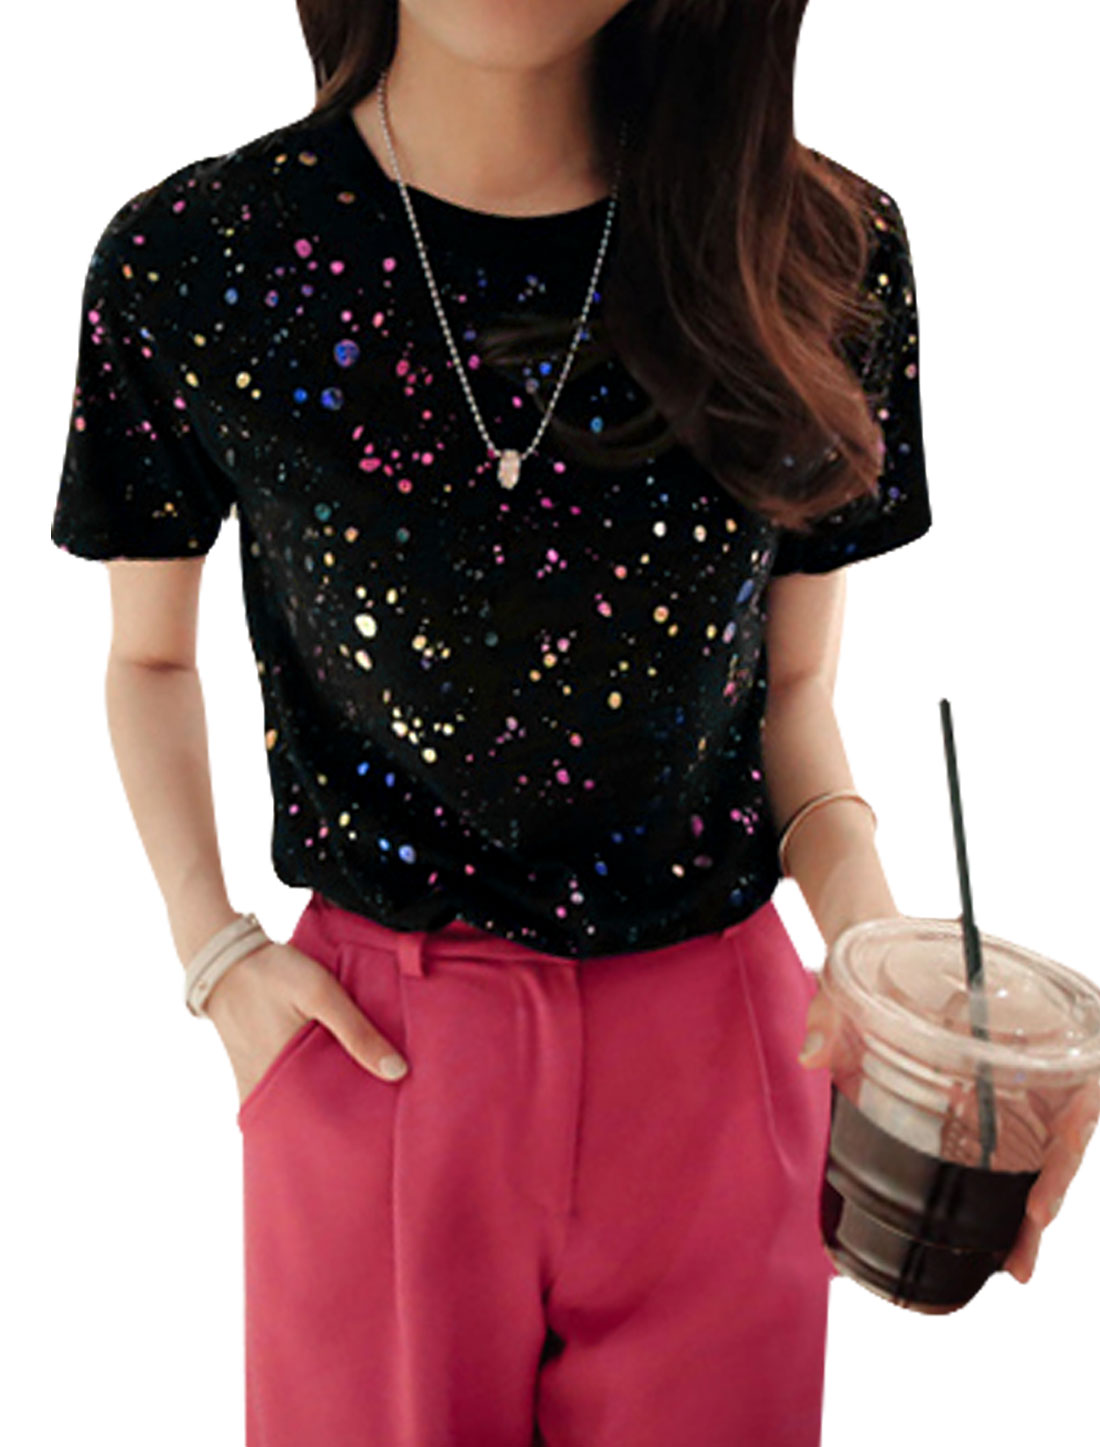 Ladies Short Sleeve Dots Embellished Pullover Fashion Top Black XS